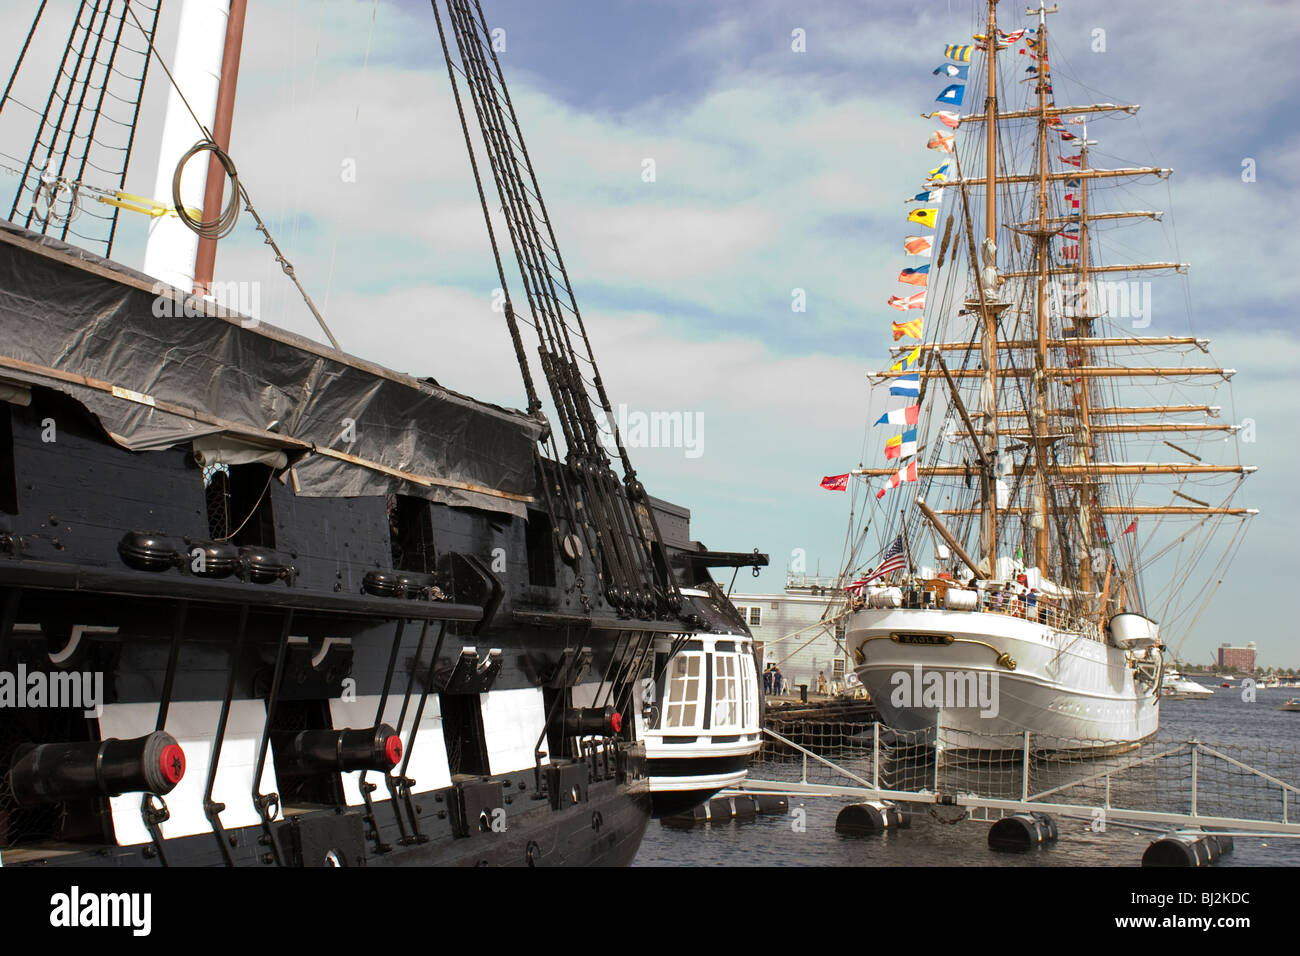 Uss Constitution Under Renovation In Charlestown Navy Yard With The Stock Photo Royalty Free